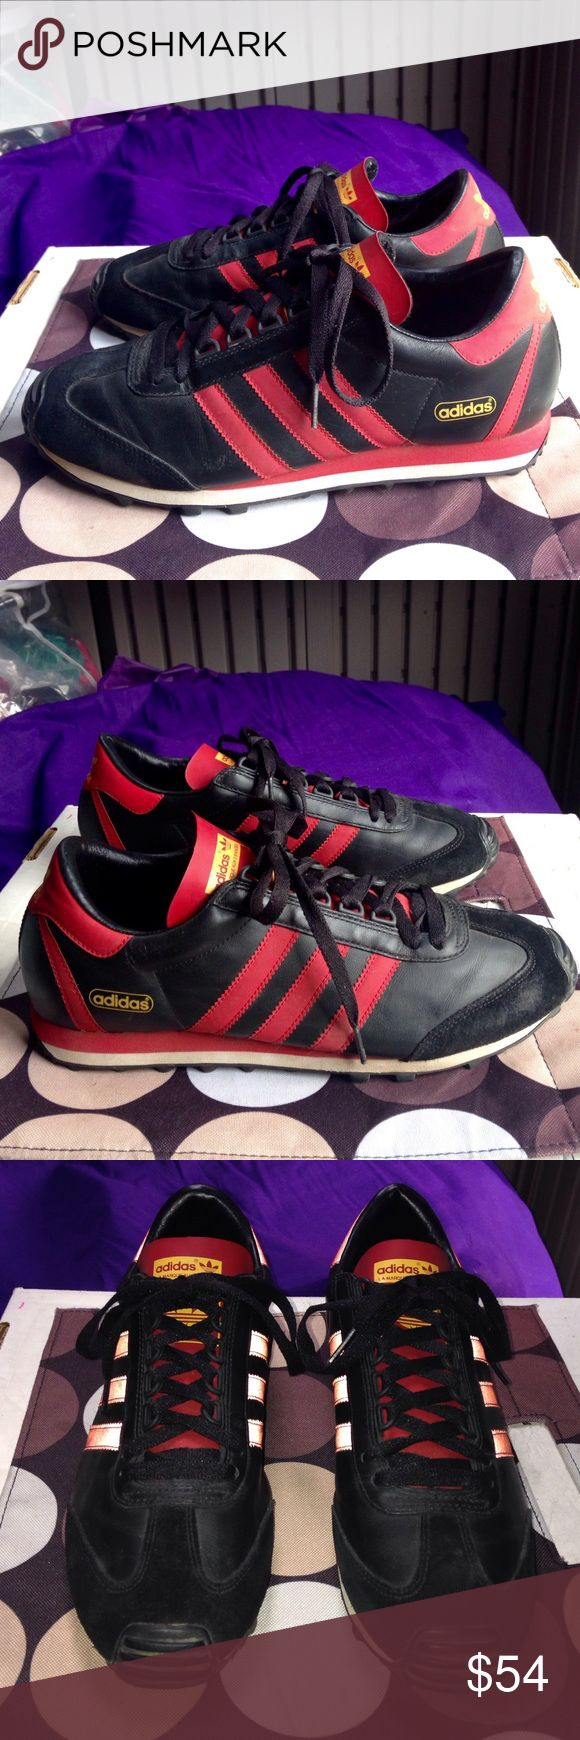 ADIDAS Blk Red Leather Running Shoes EUC 9 ADIDAS La Marque Aux 3 Bandes Blk Red Leather Running Shoes EUC Women's US 9 Adidas Shoes Athletic Shoes